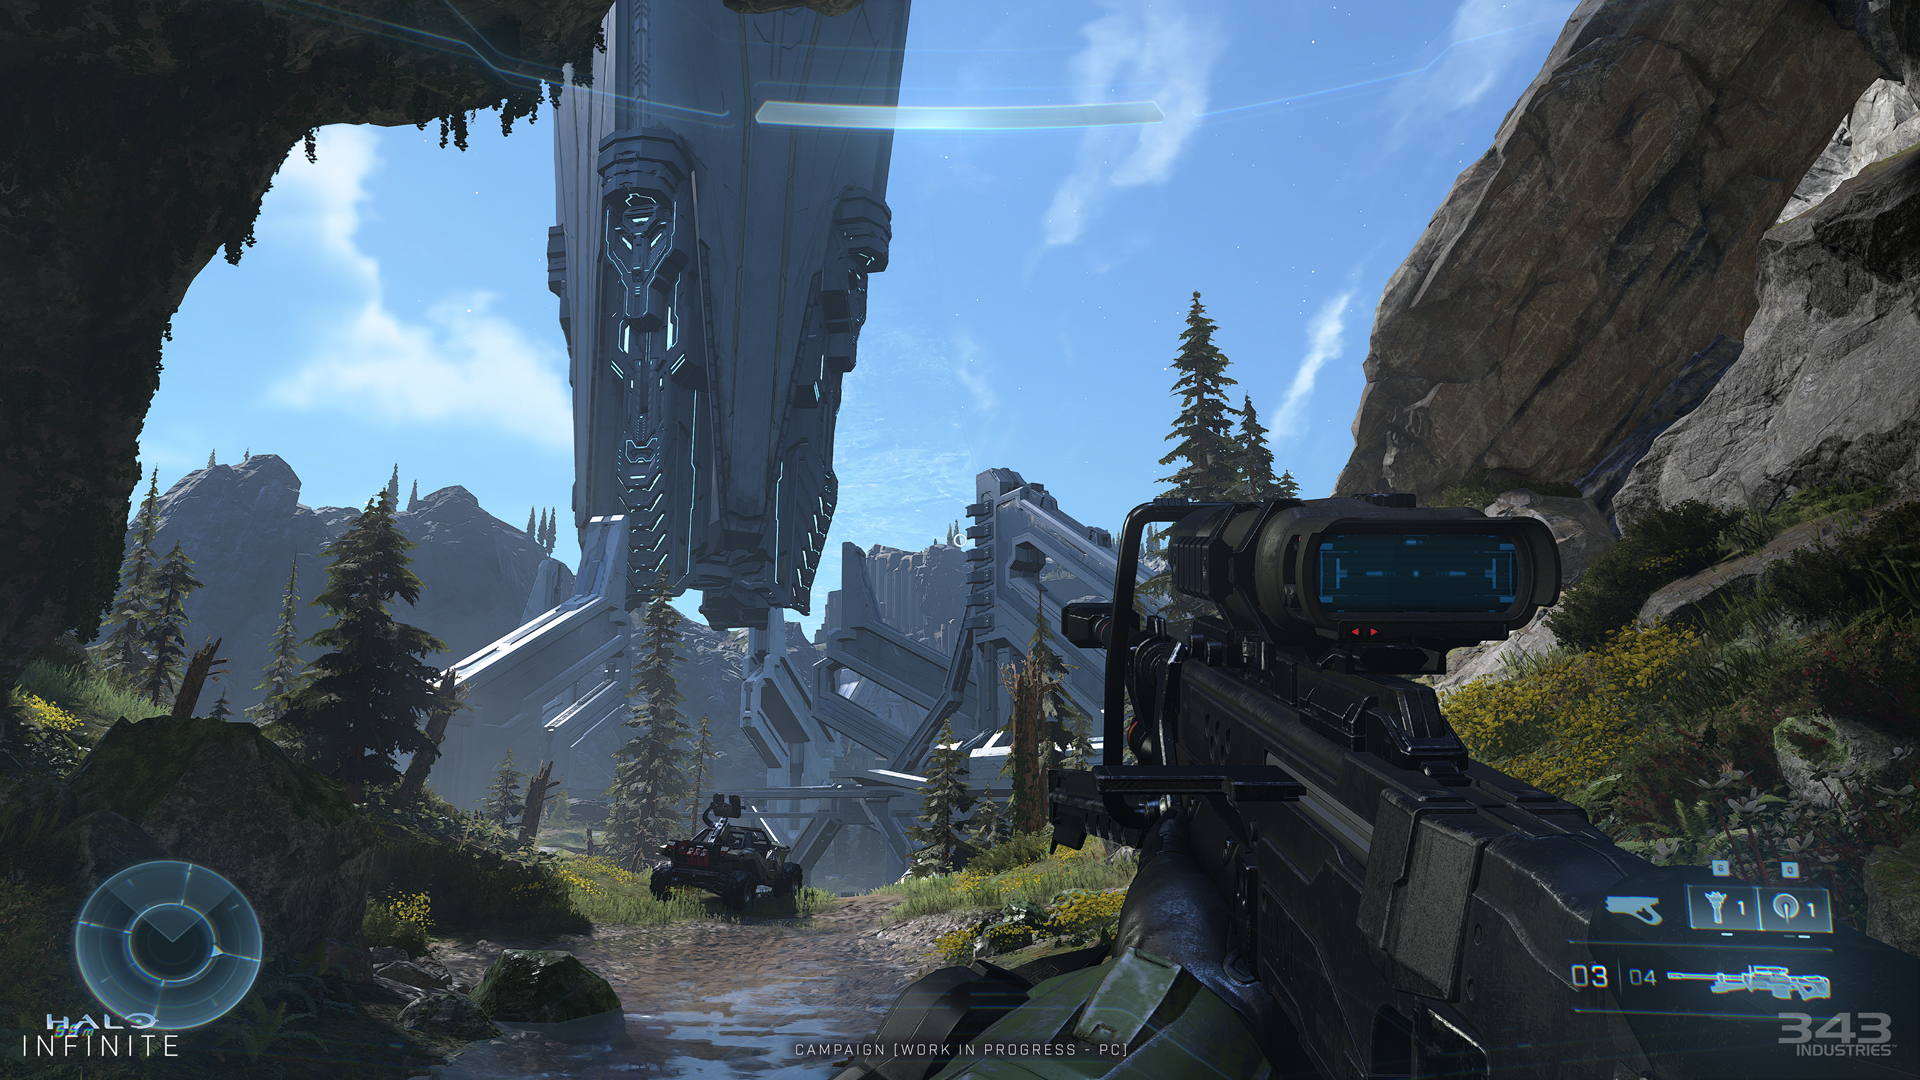 In-game first person screenshot Master Chief holding the Sniper looking at a large Forerunner structure.